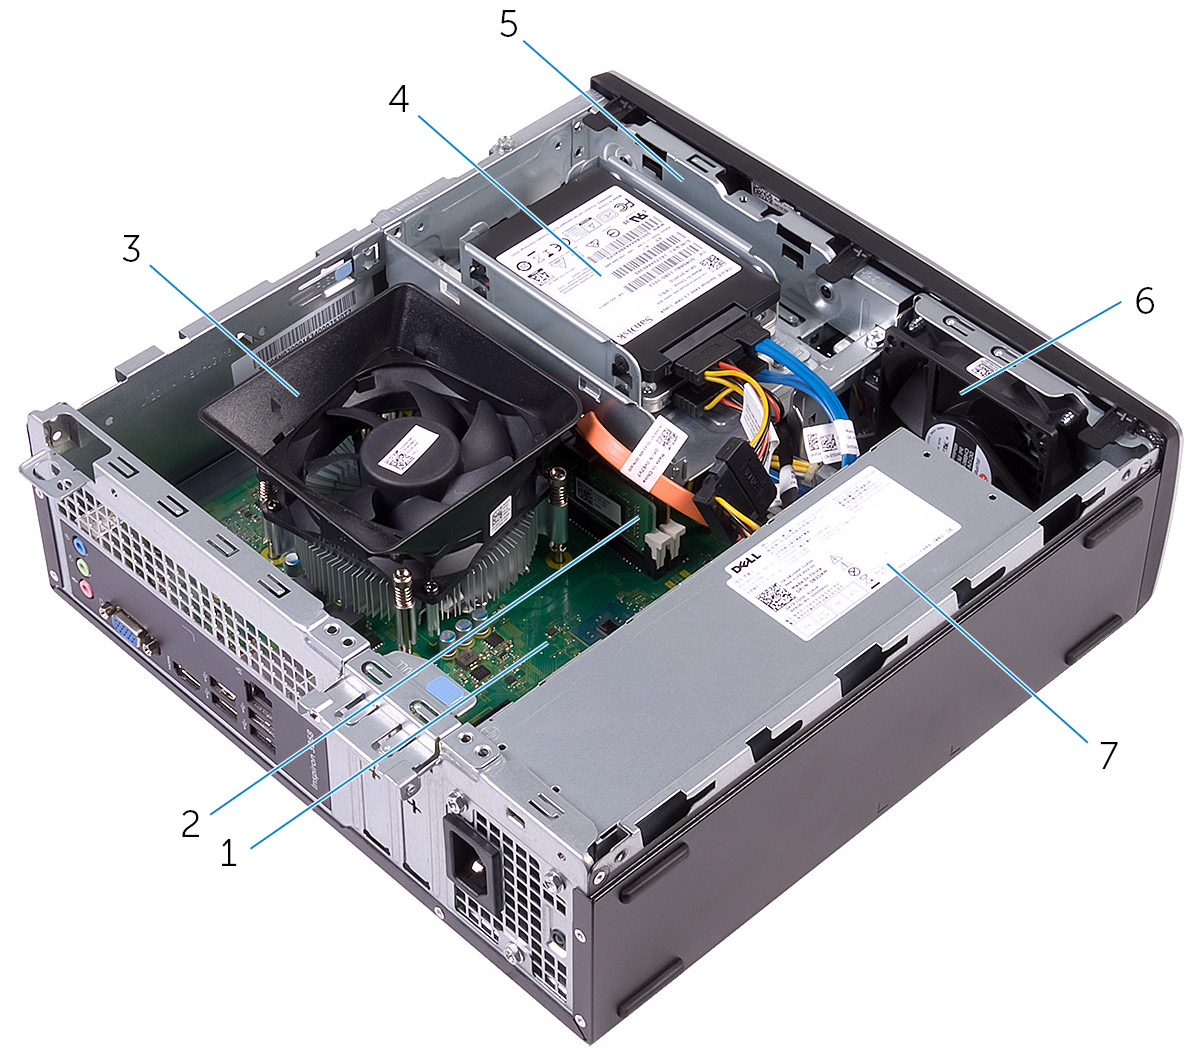 Bn 1643067 also 9720 Diy Mpcie To Pcie Adapter Failure moreover 172128980349 moreover 252715821994 further DELL VOSTRO 230 DRIVERS. on dell inspiron 3000 desktop motherboard